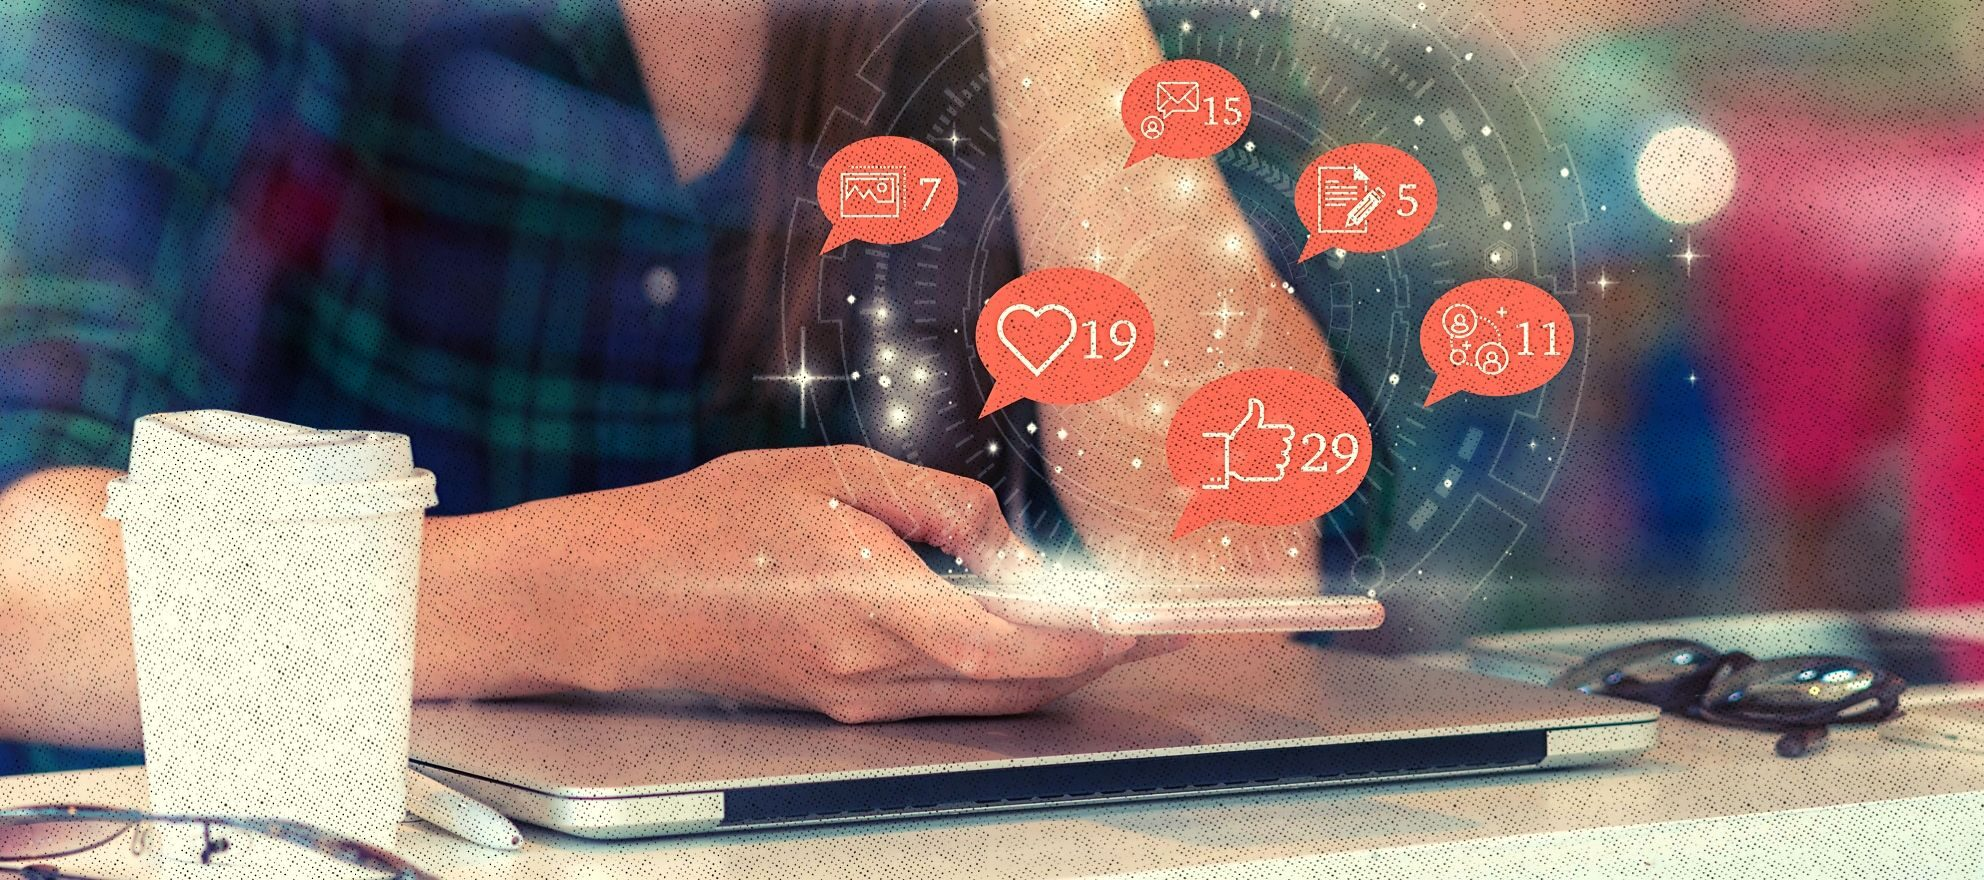 OutboundEngine gets social with automated ad campaigns